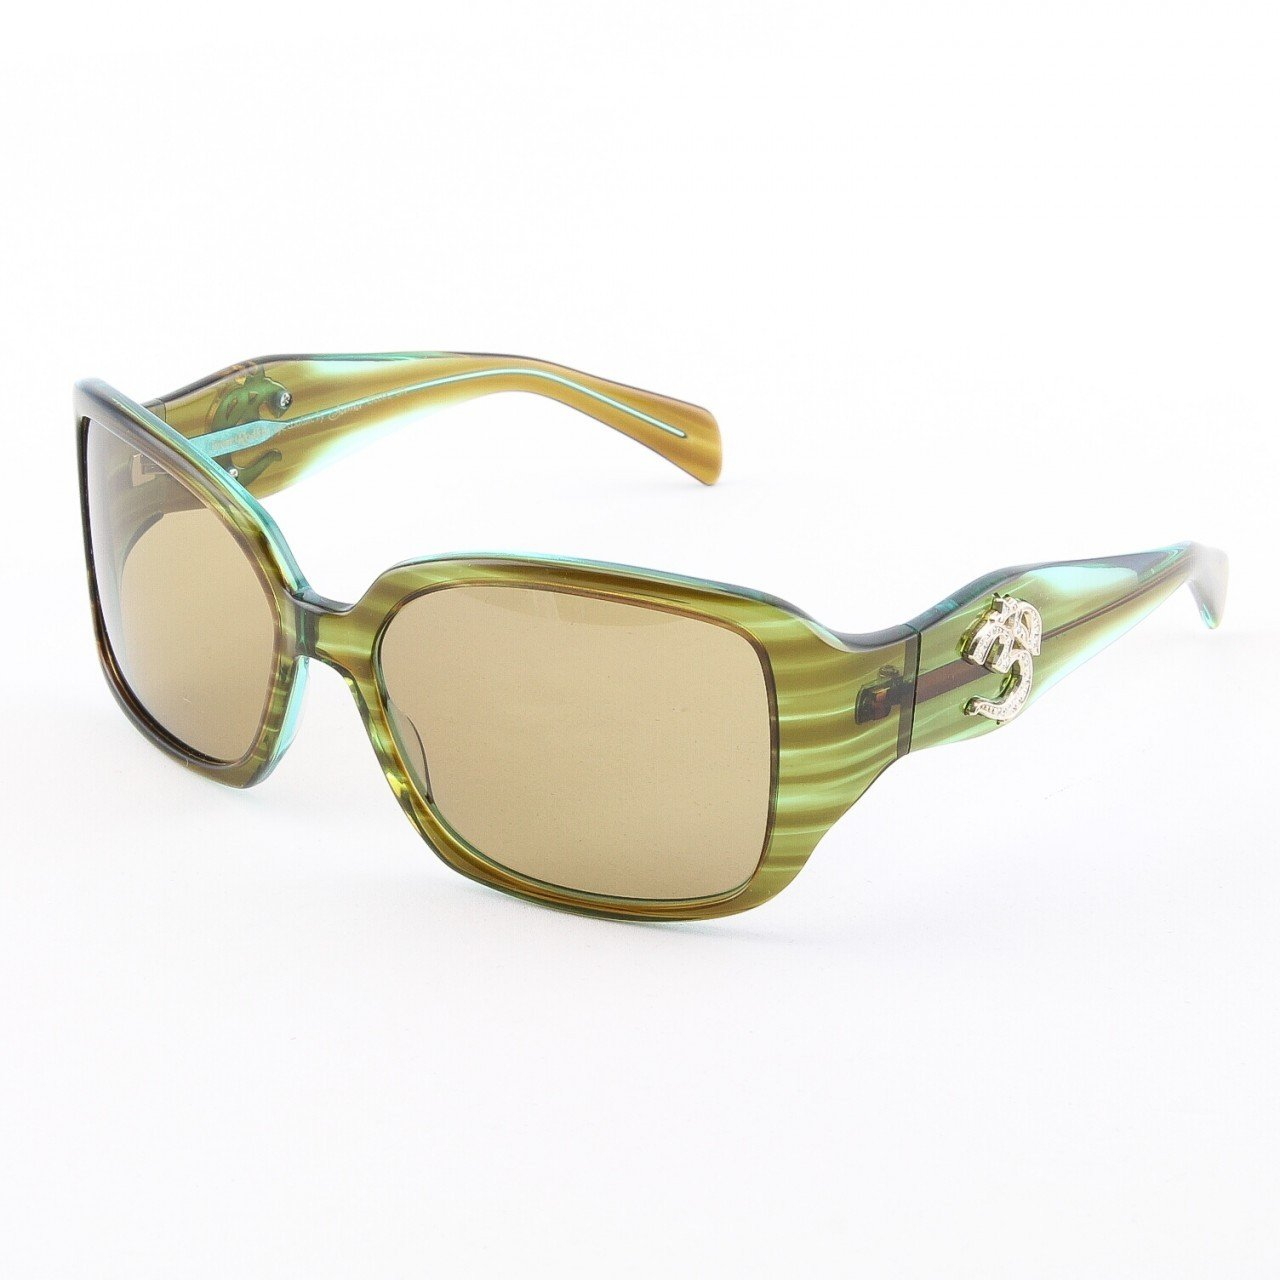 Loree Rodkin Electra Sunglasses Olive w/ Brown Lenses, Sterling Silver and Swarovski Crystals